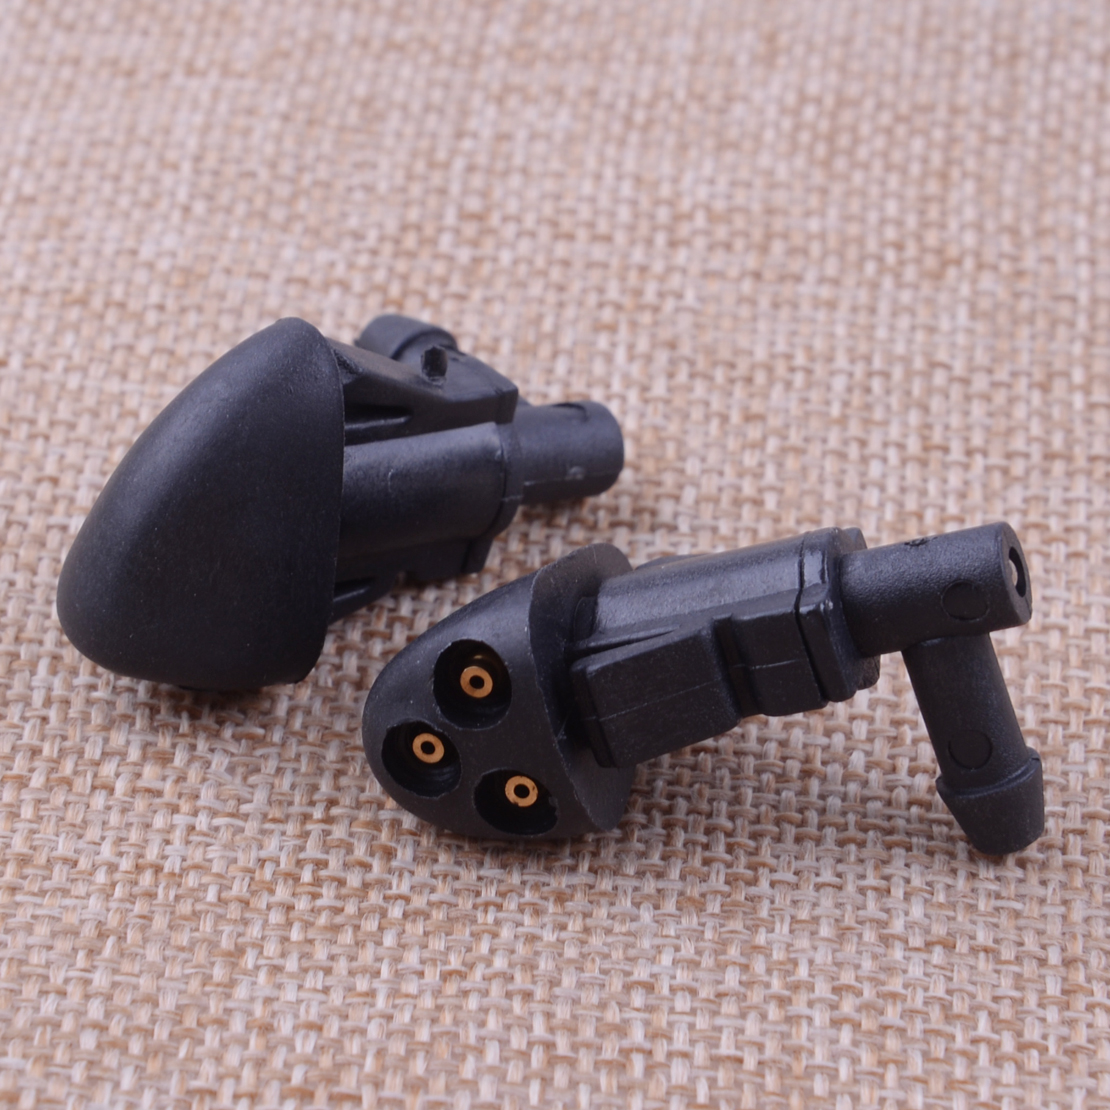 CITALL 2Pcs 3-Hole Car Windshield Washer Wiper Water Spray Nozzle Fit For Chevrolet Cruze 2009 2010 2011 2012 2013 2014